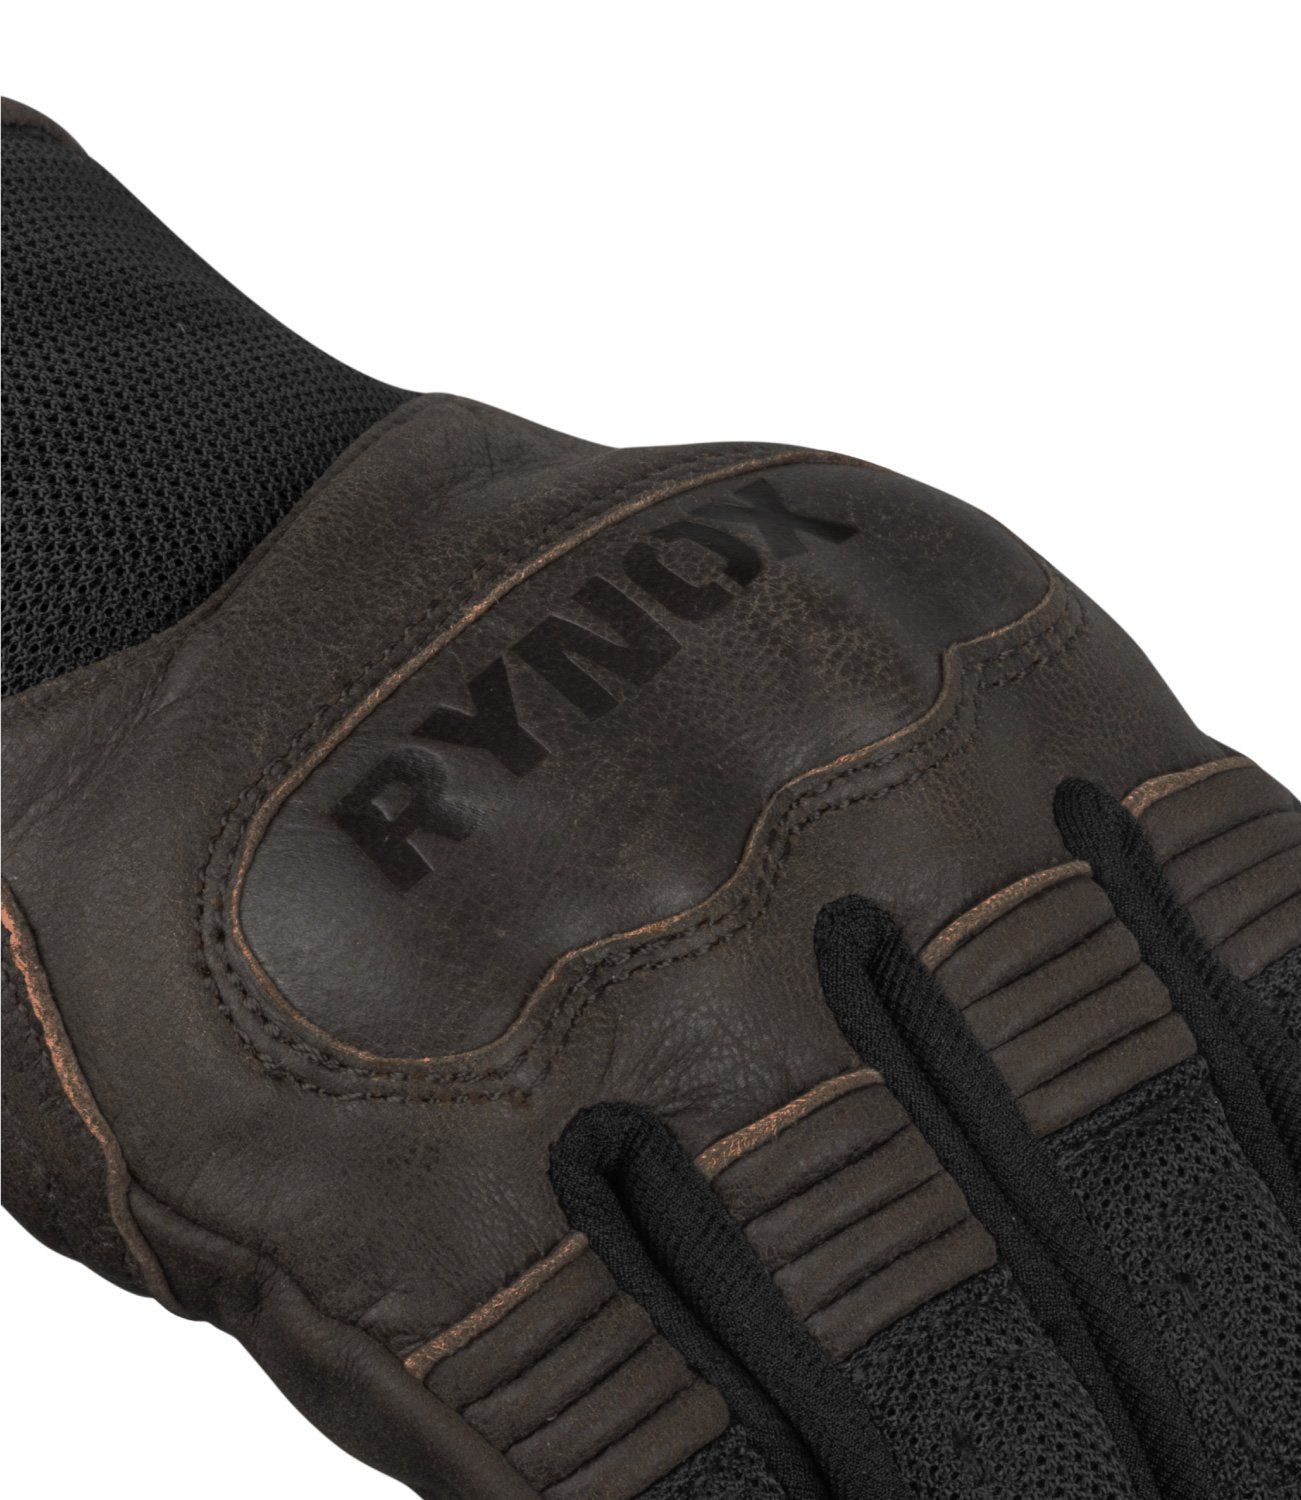 Rynox Urban Gloves Brown 3